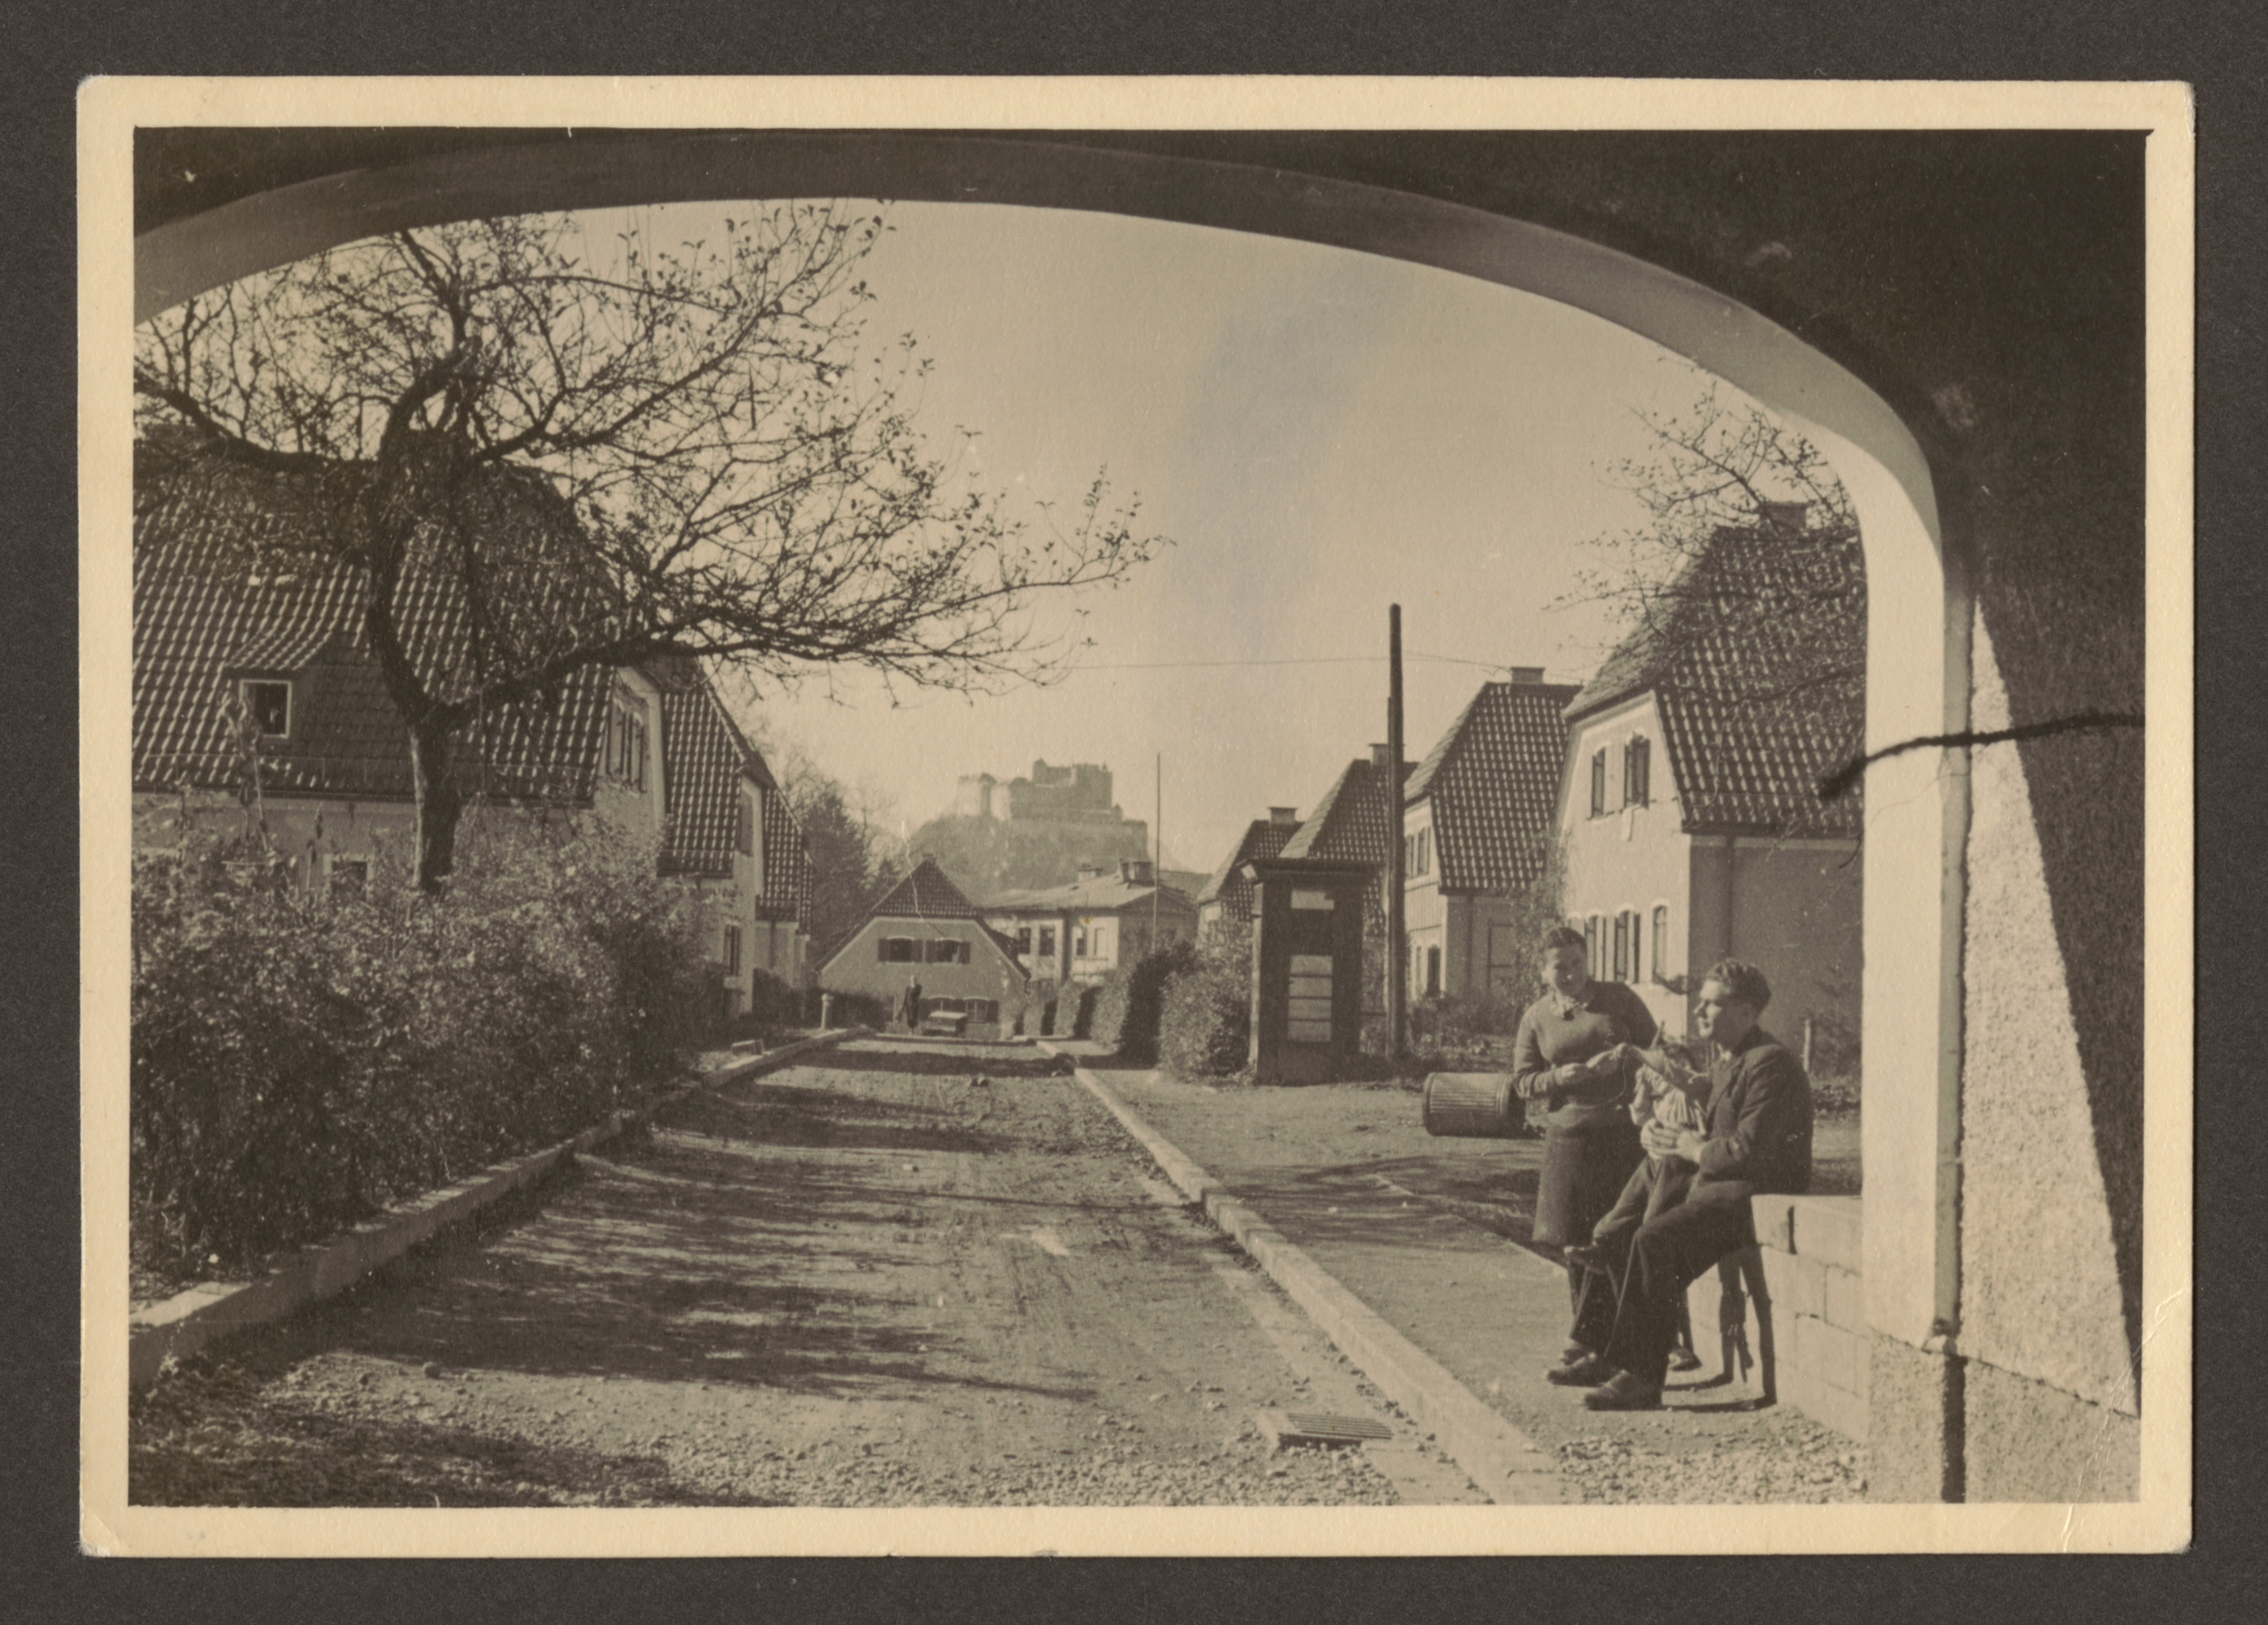 Manya Blacher and an unidentified man pose under an archway in Salzburg [perhaps on their way to Germany].